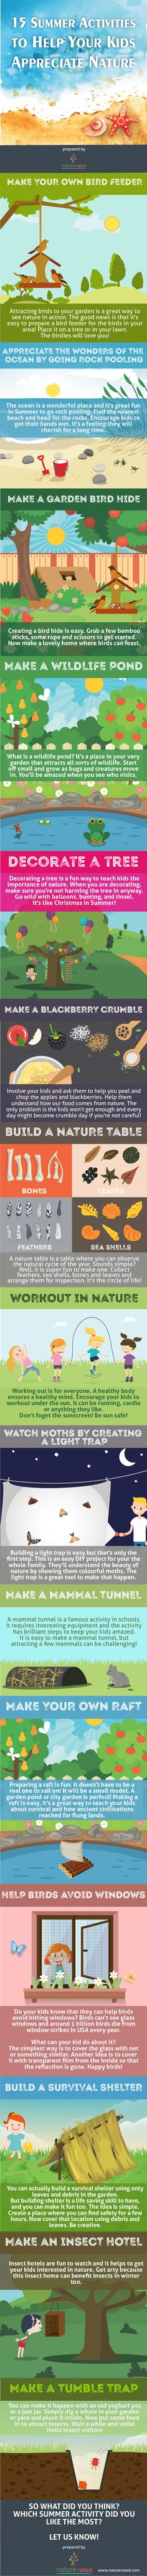 Fun, hands-on nature exploration activities your kids can do this summer!